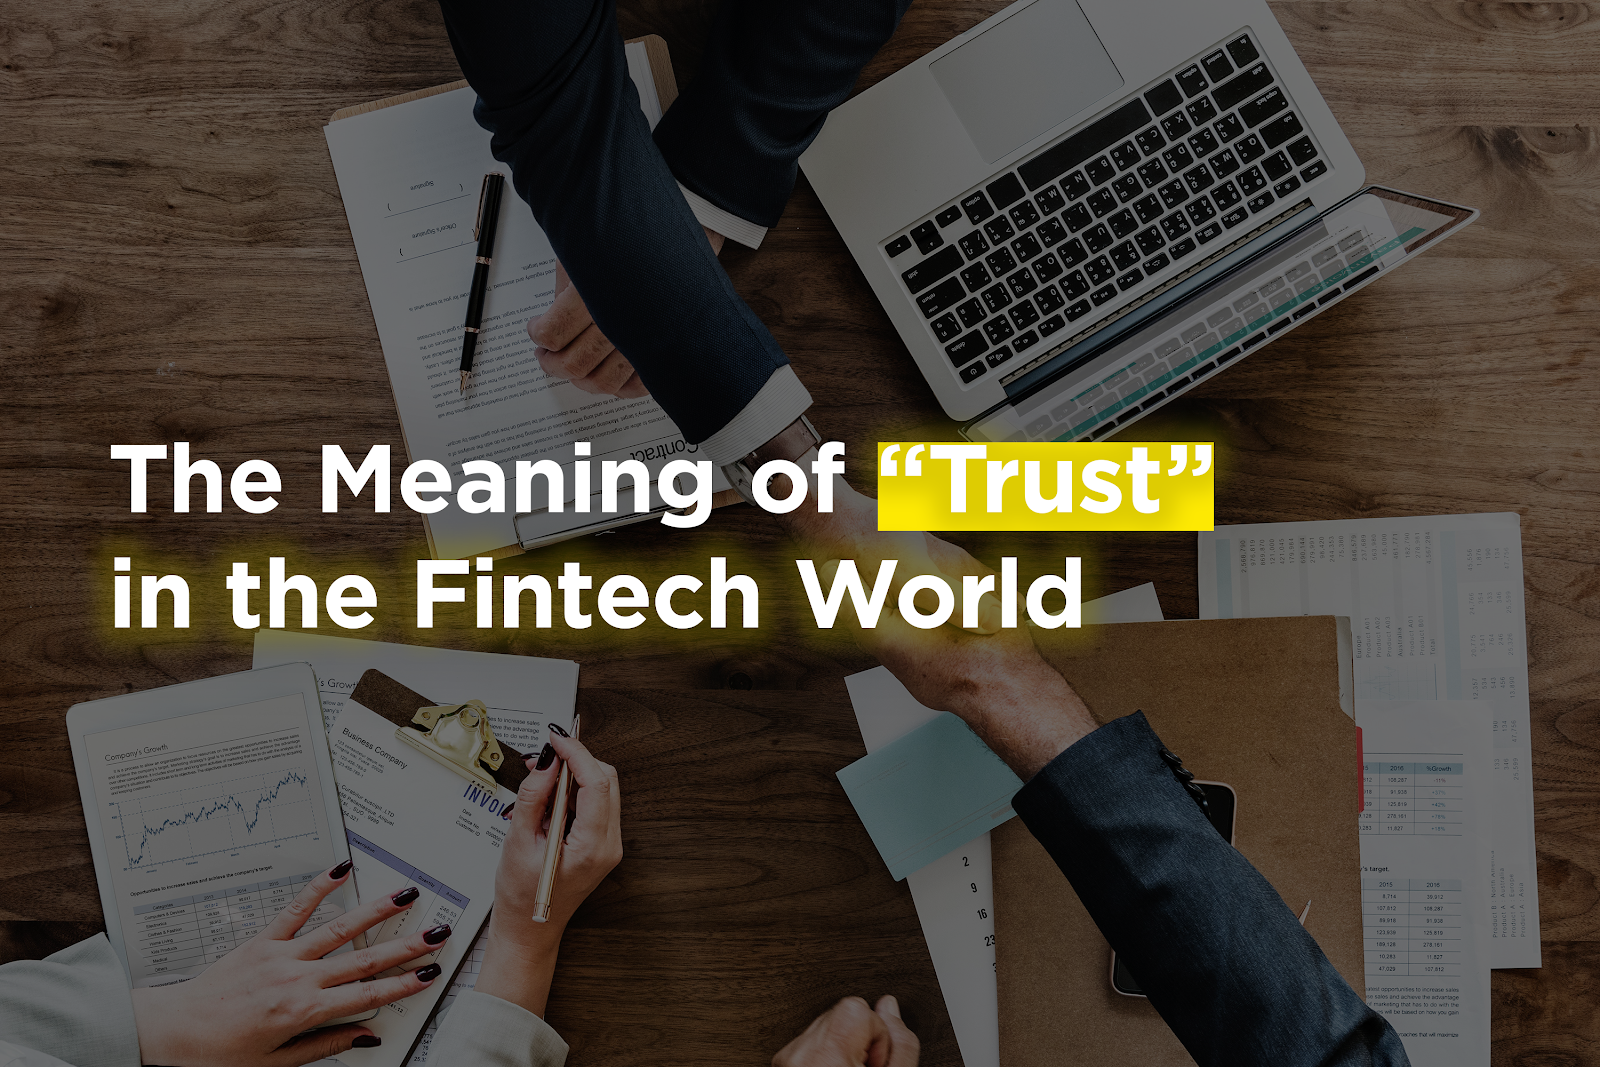 /the-meaning-of-trust-in-the-fintech-world-9bfc2a5ccd6a feature image